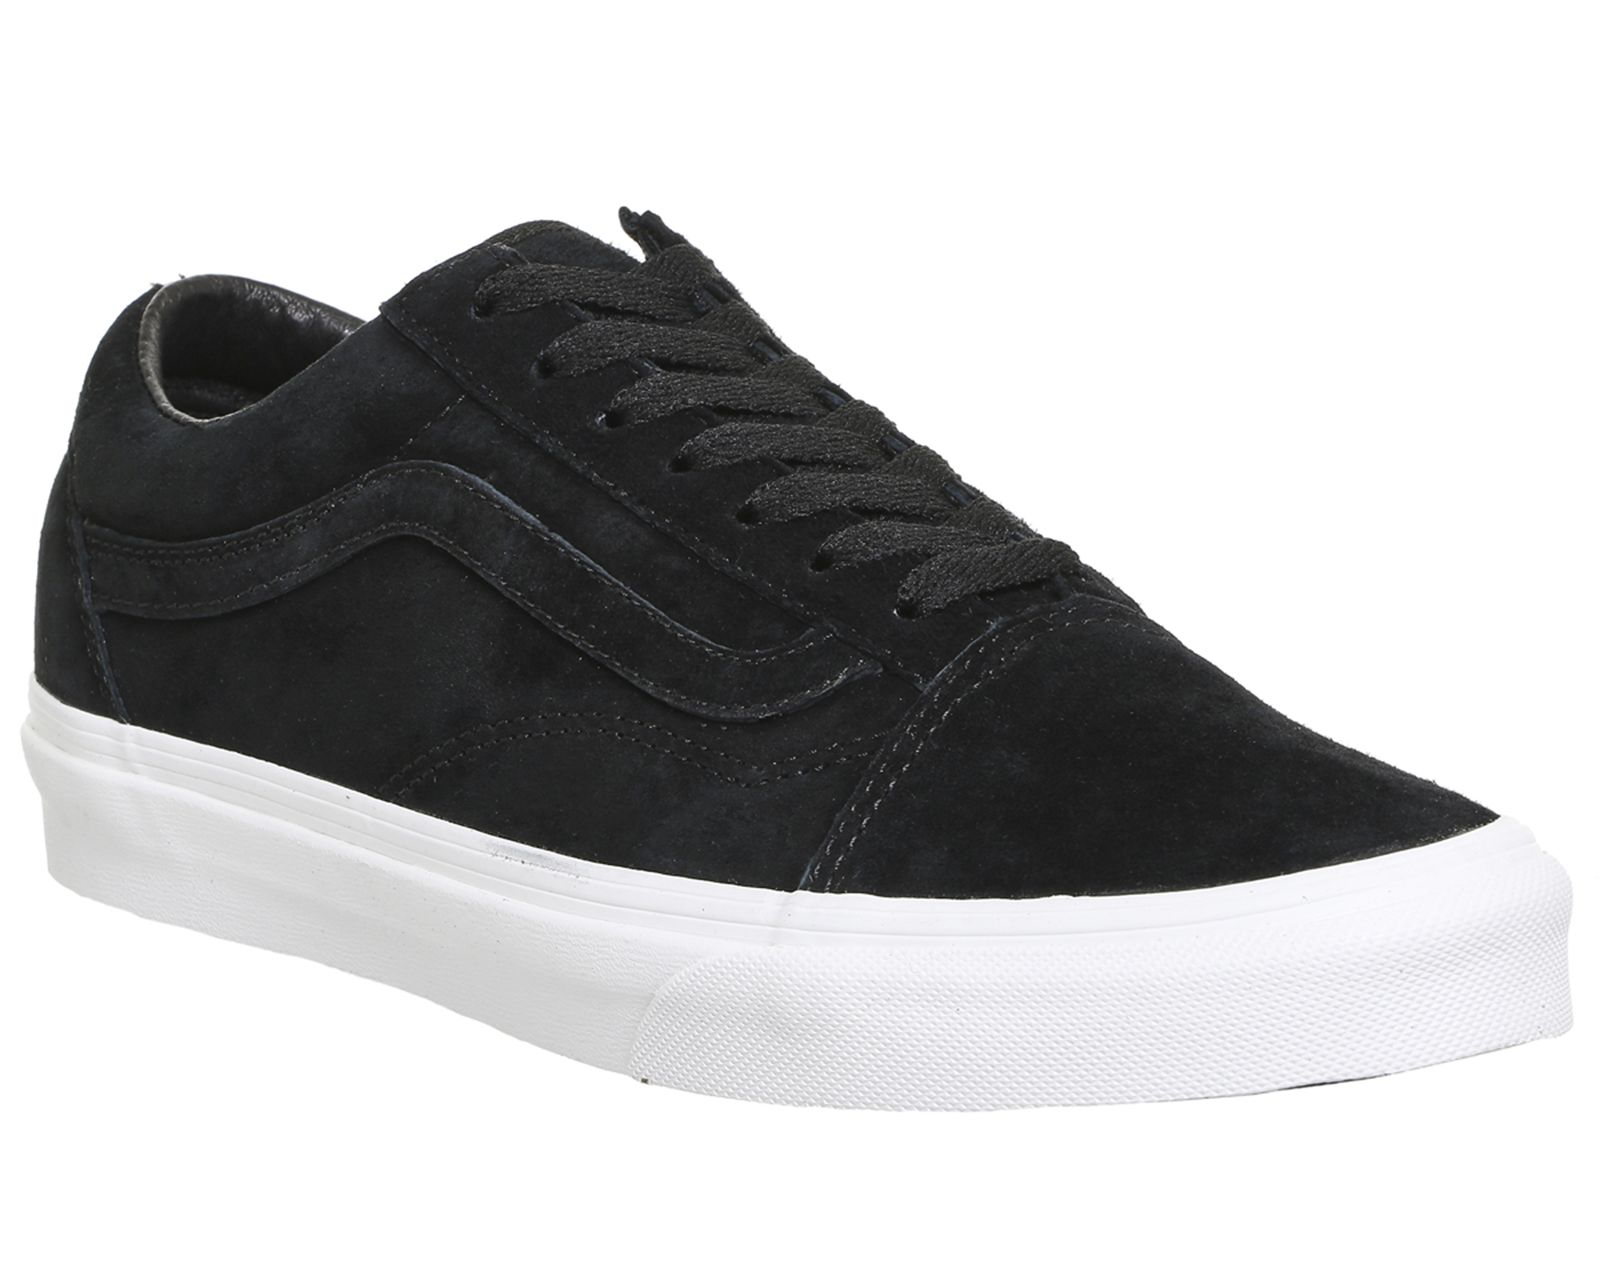 ecdfda36a16 Vans Old Skool Black Suede True White